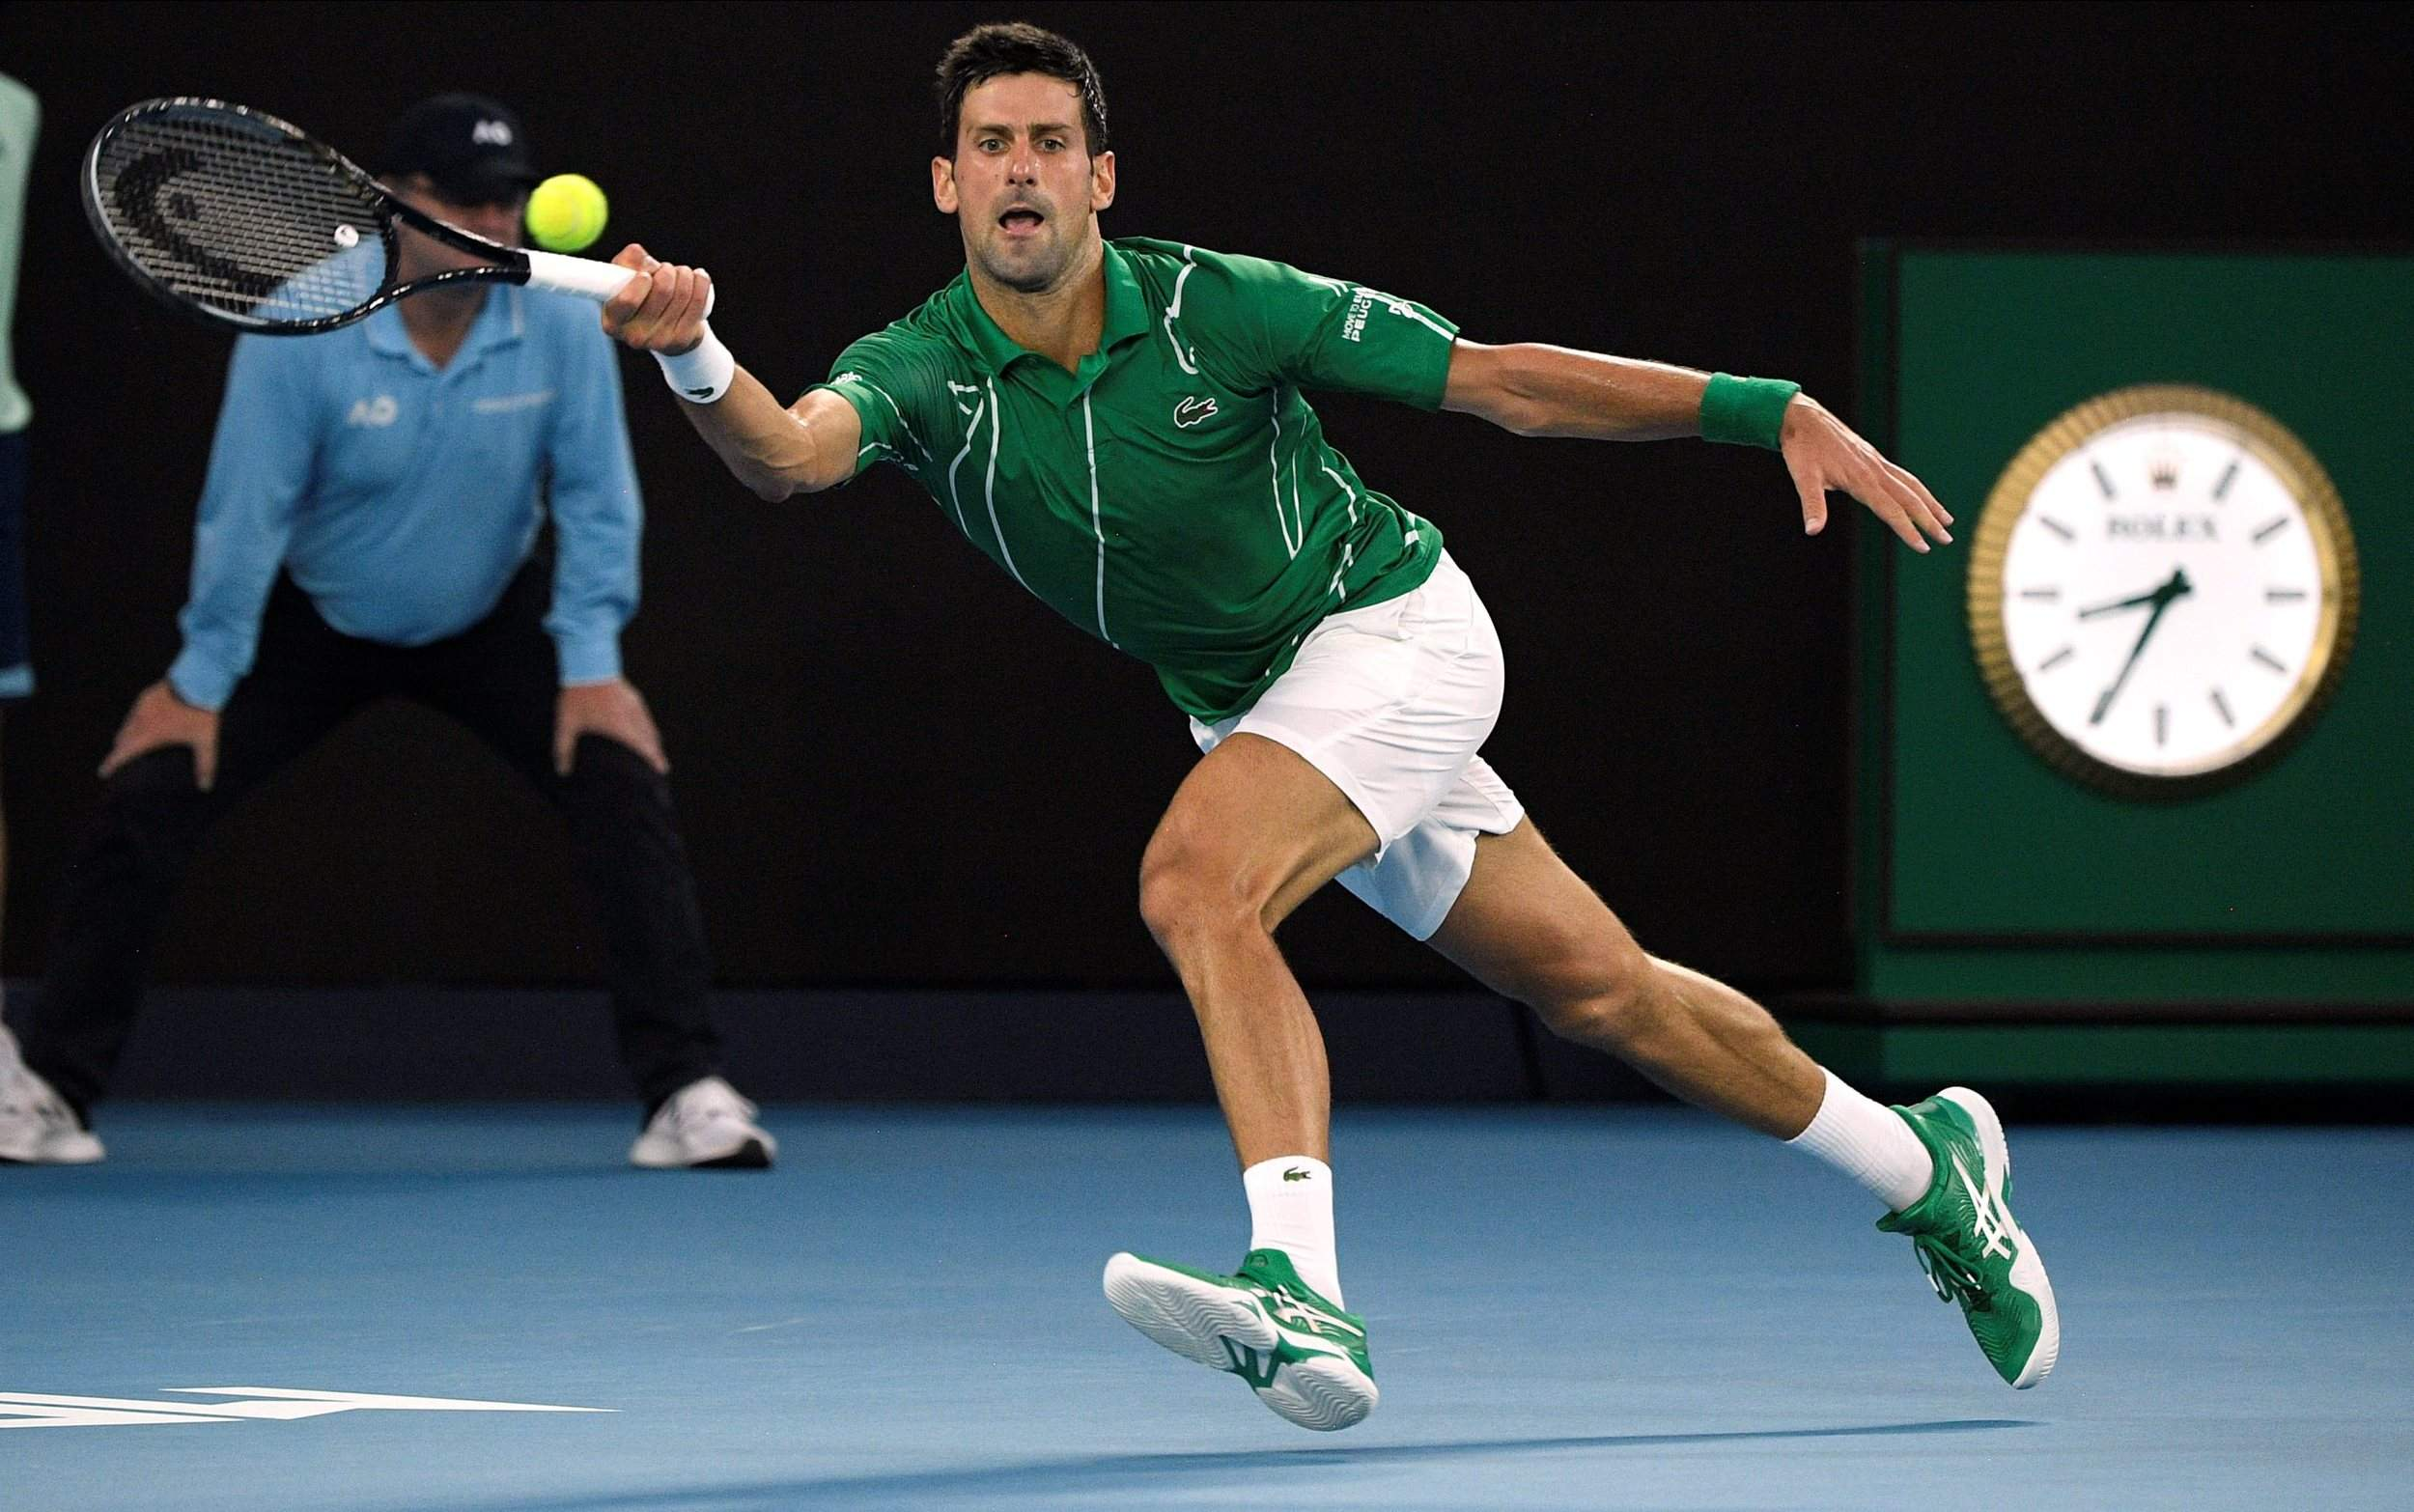 Novak Djokovic Completes Comeback Against Roger Federer In Australian Open Semifinals